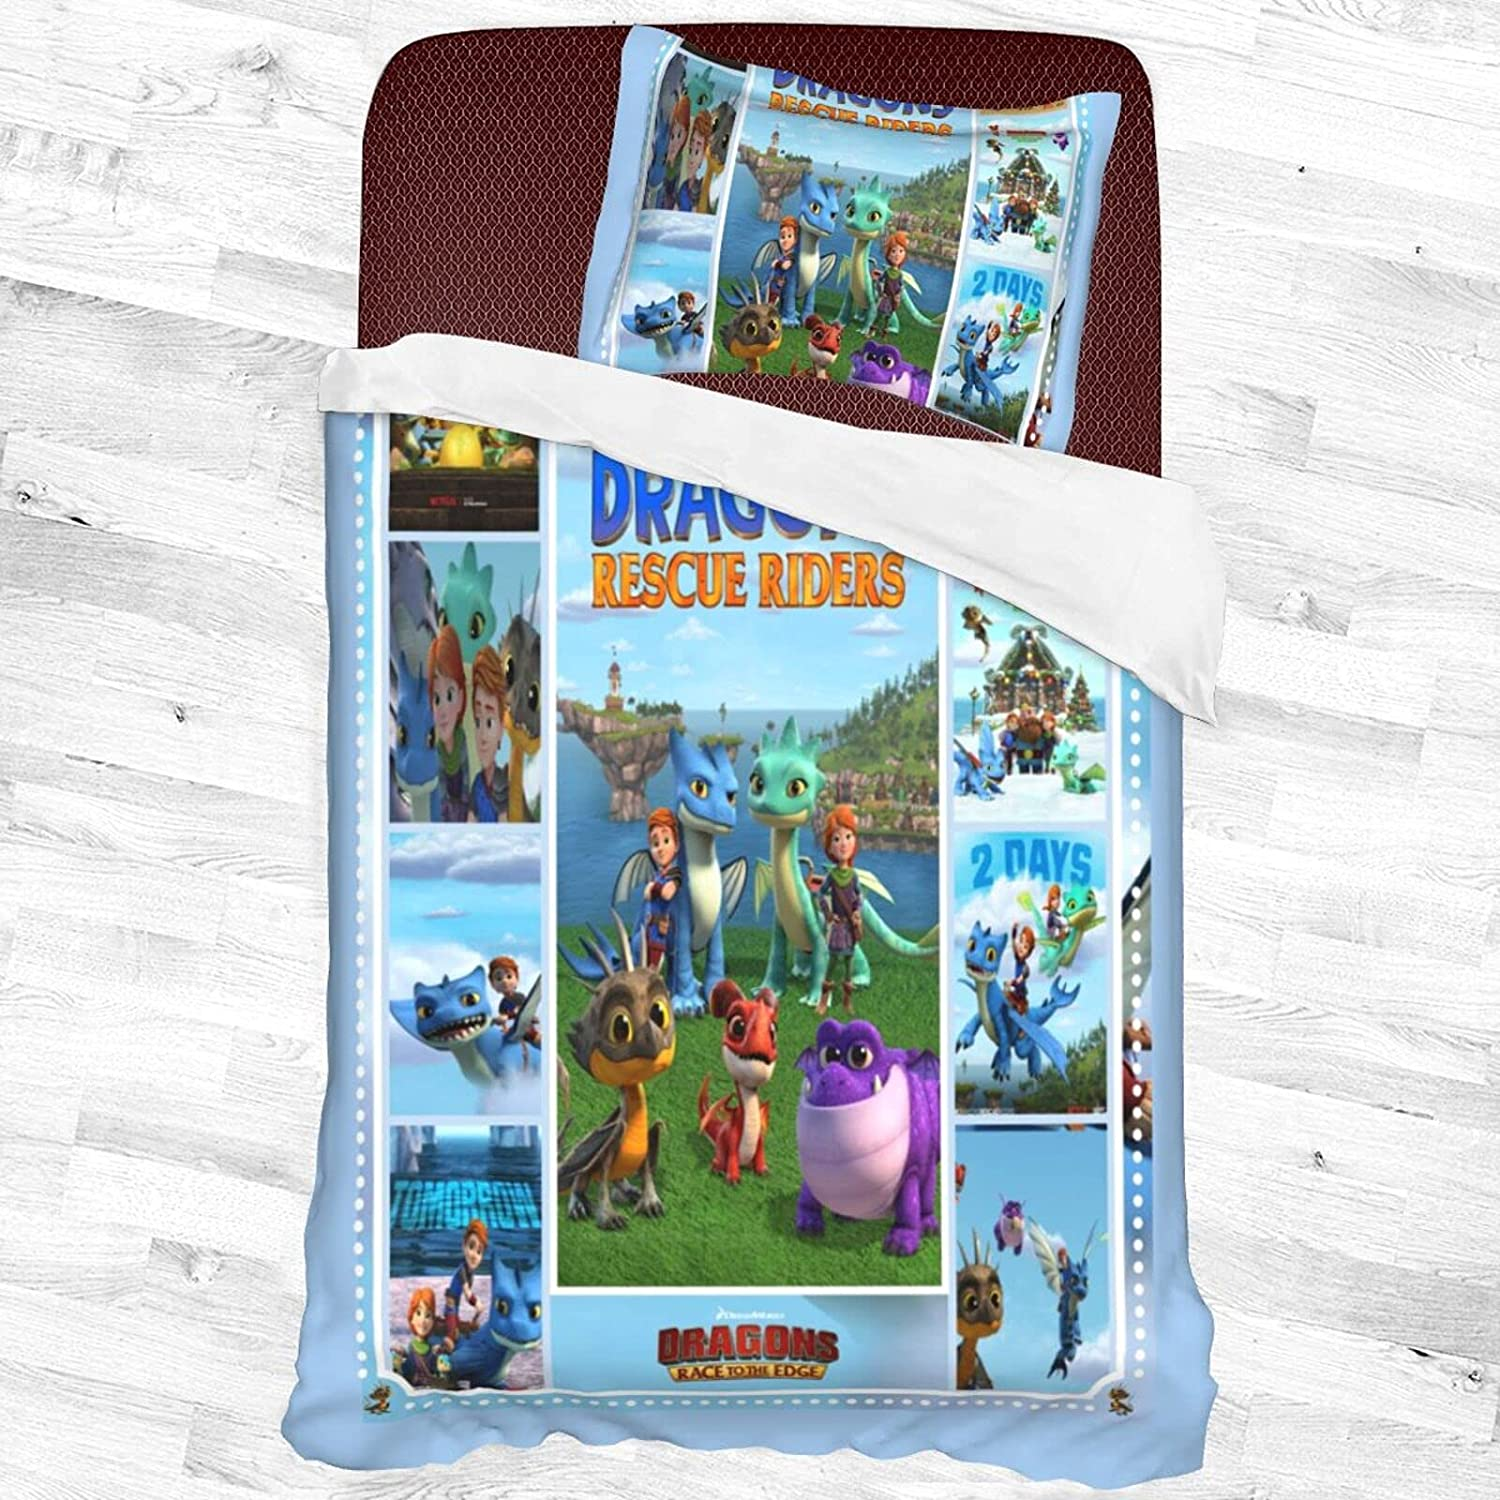 Dra.Gons Our shop OFFers the best service Re.Scue Ri.Ders Decorative 2 Same day shipping Piece Set P Bedding with 1